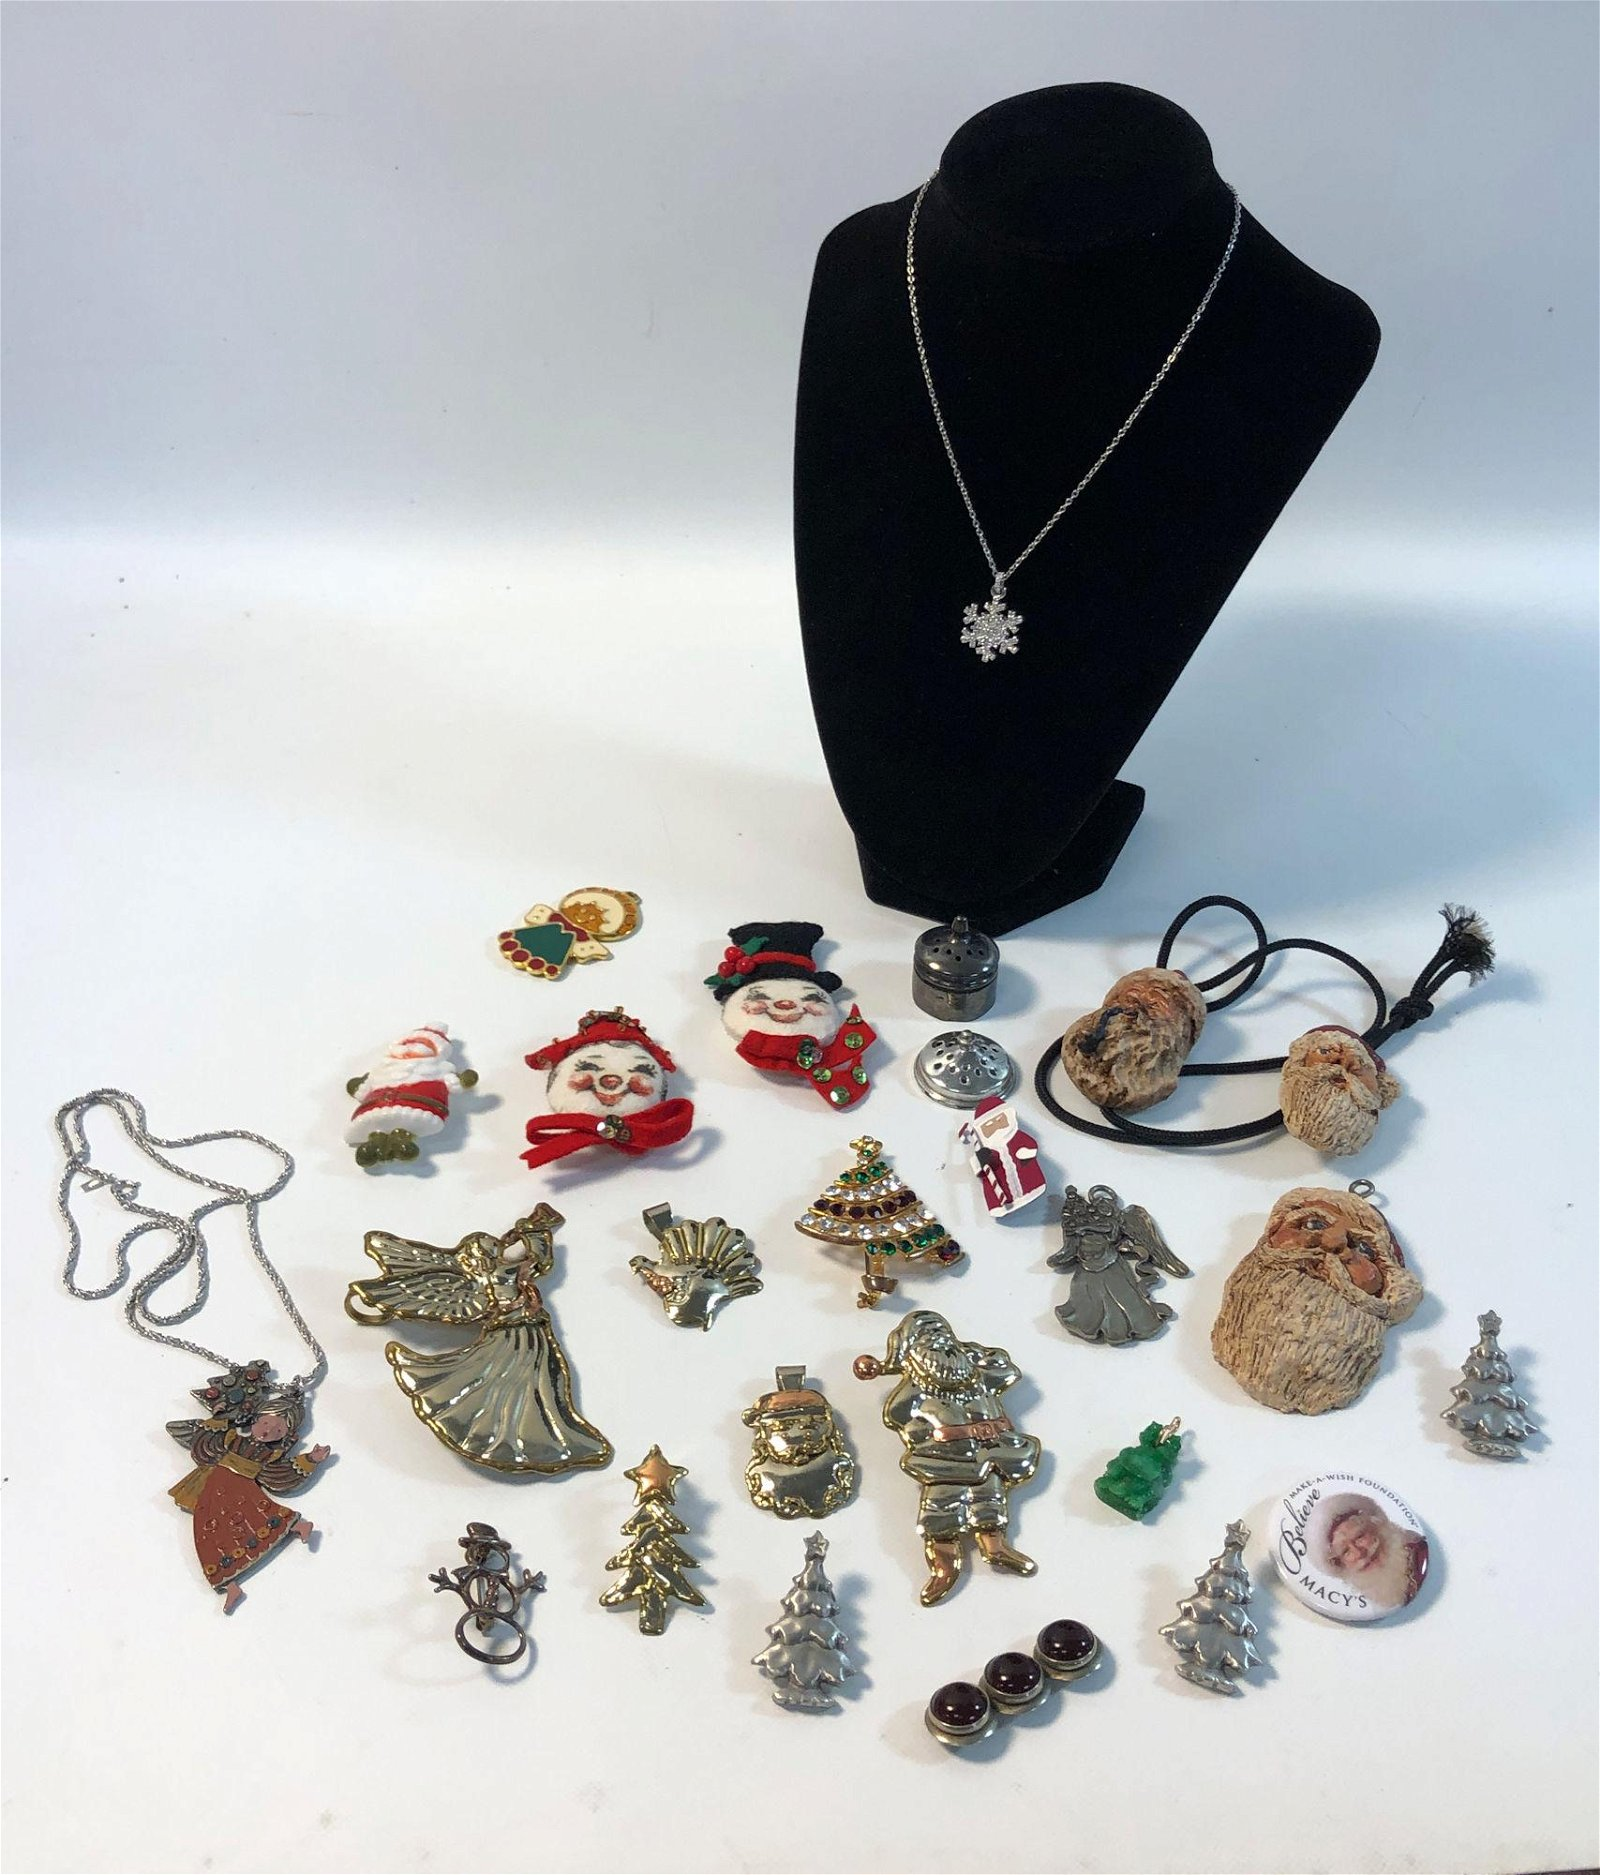 LOT OF ASSORTED HOLIDAY PINS AND ACCESSORIES